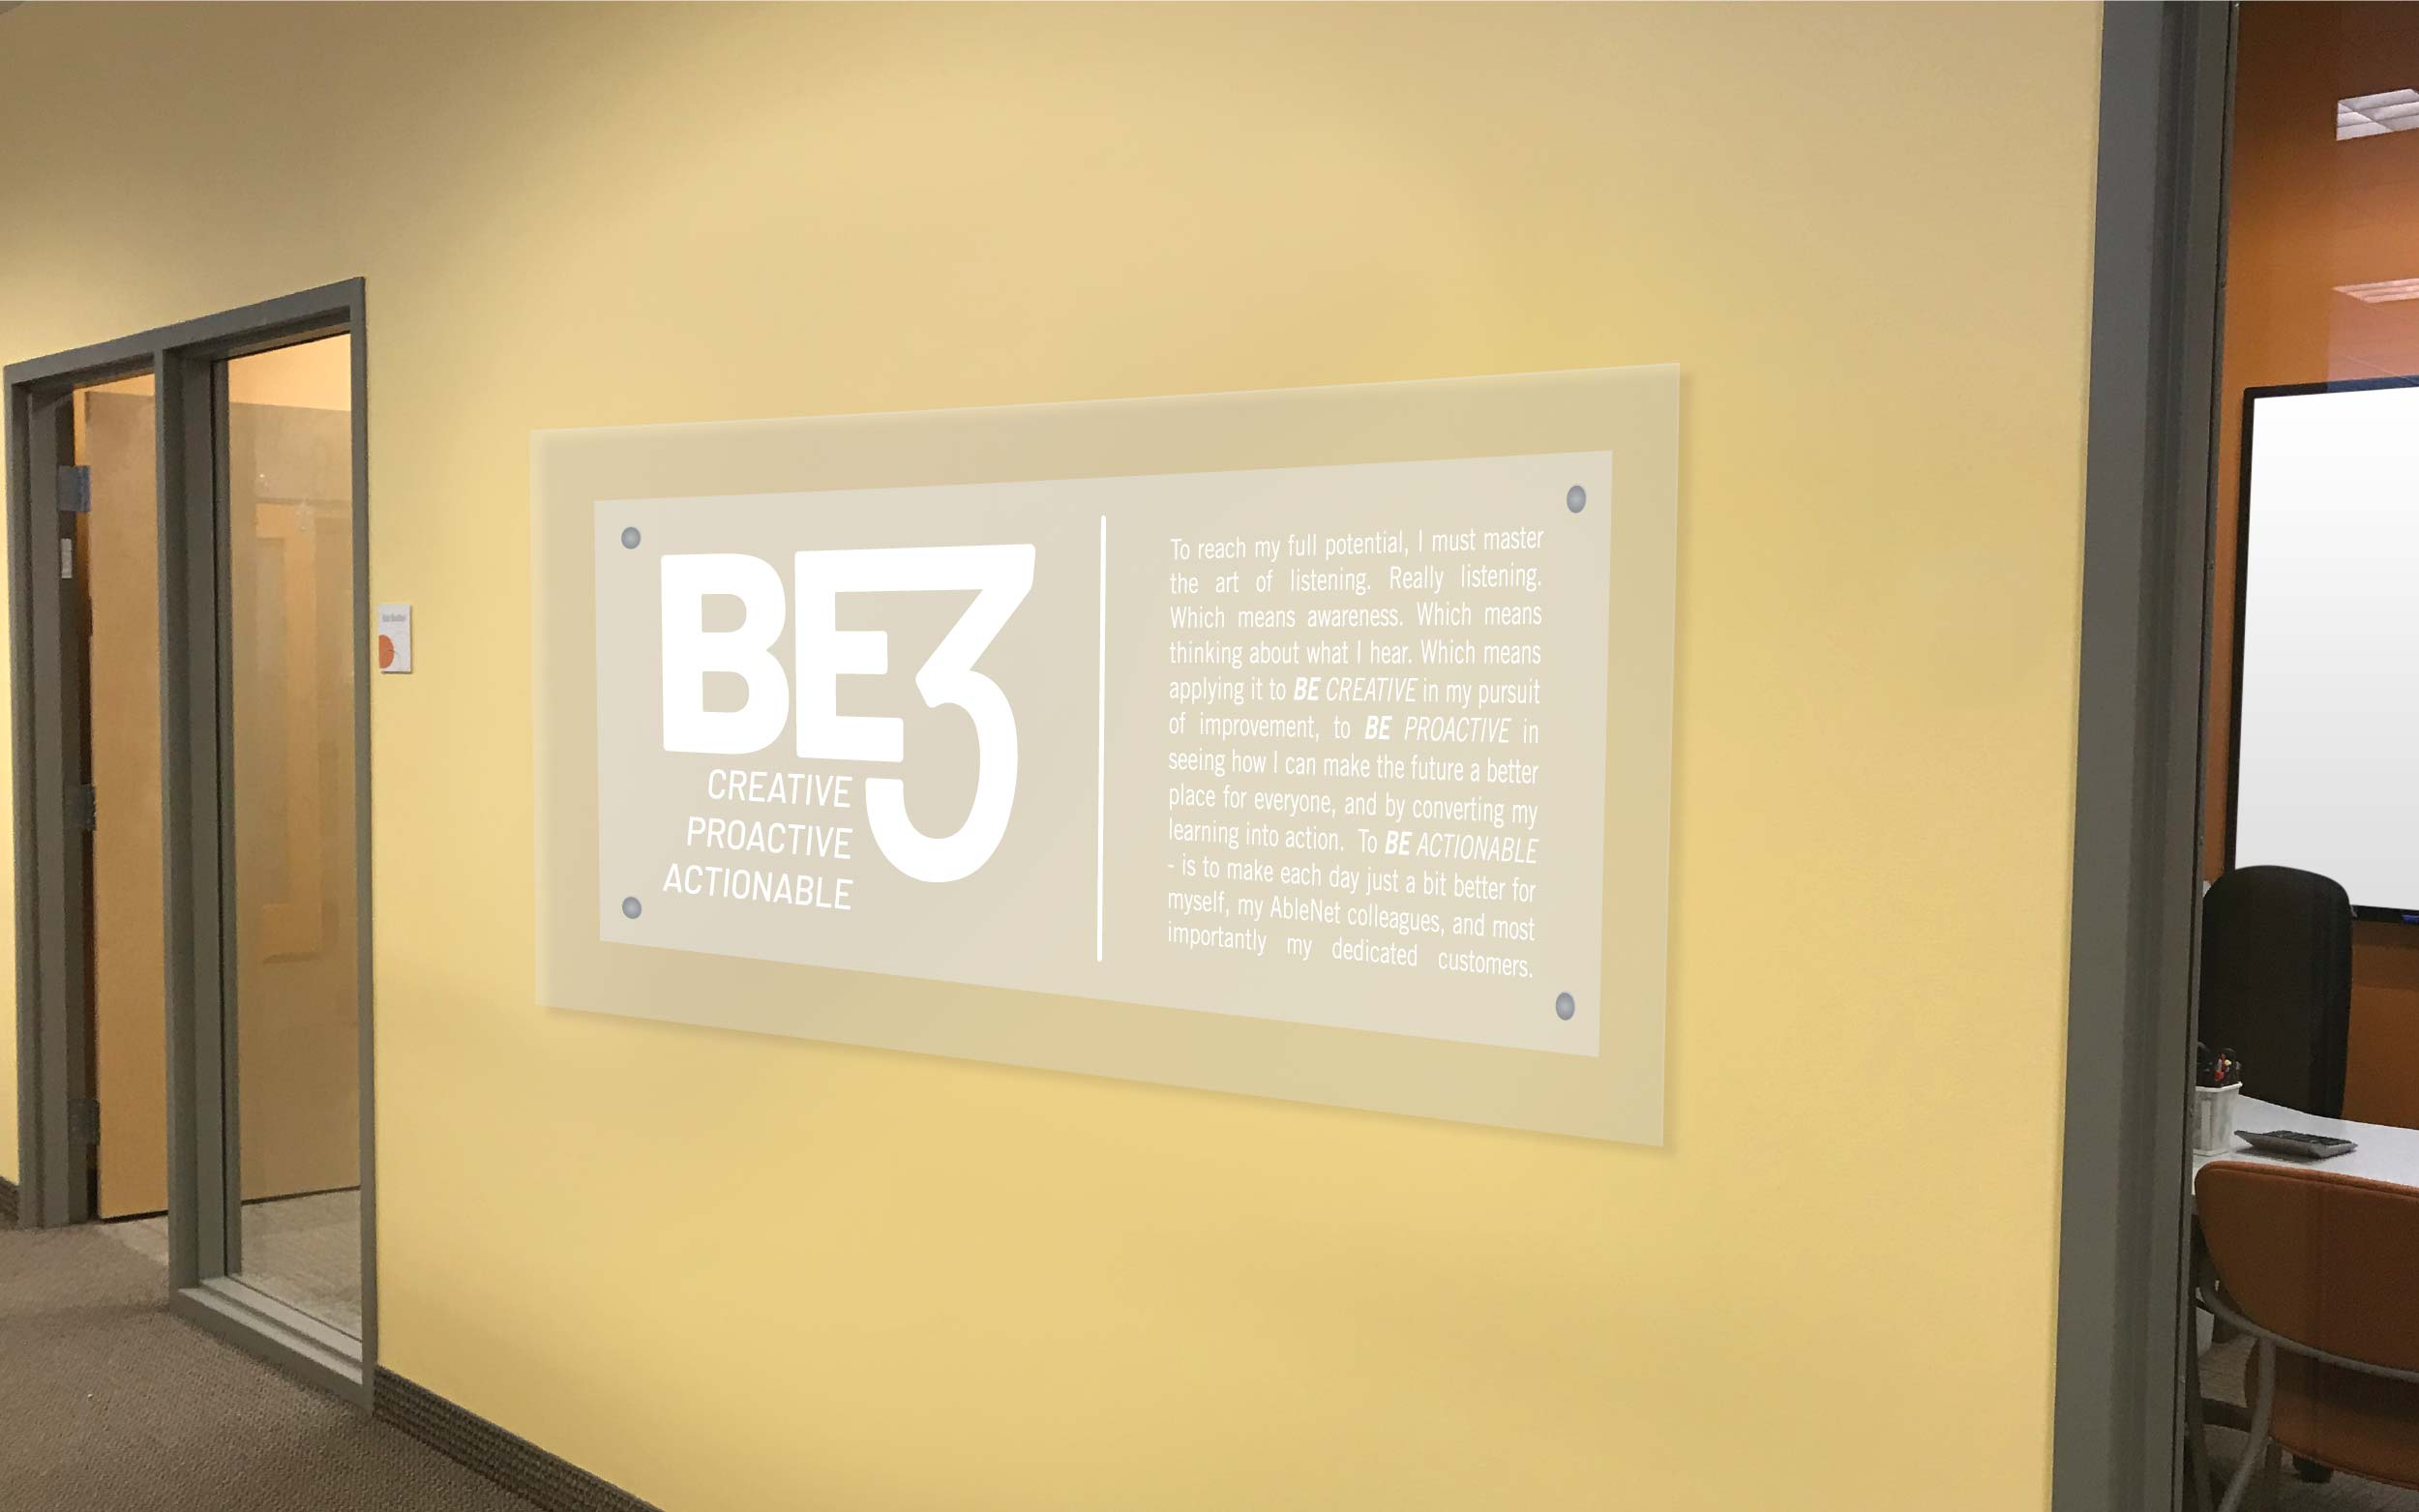 BE3 Wall Sign Application